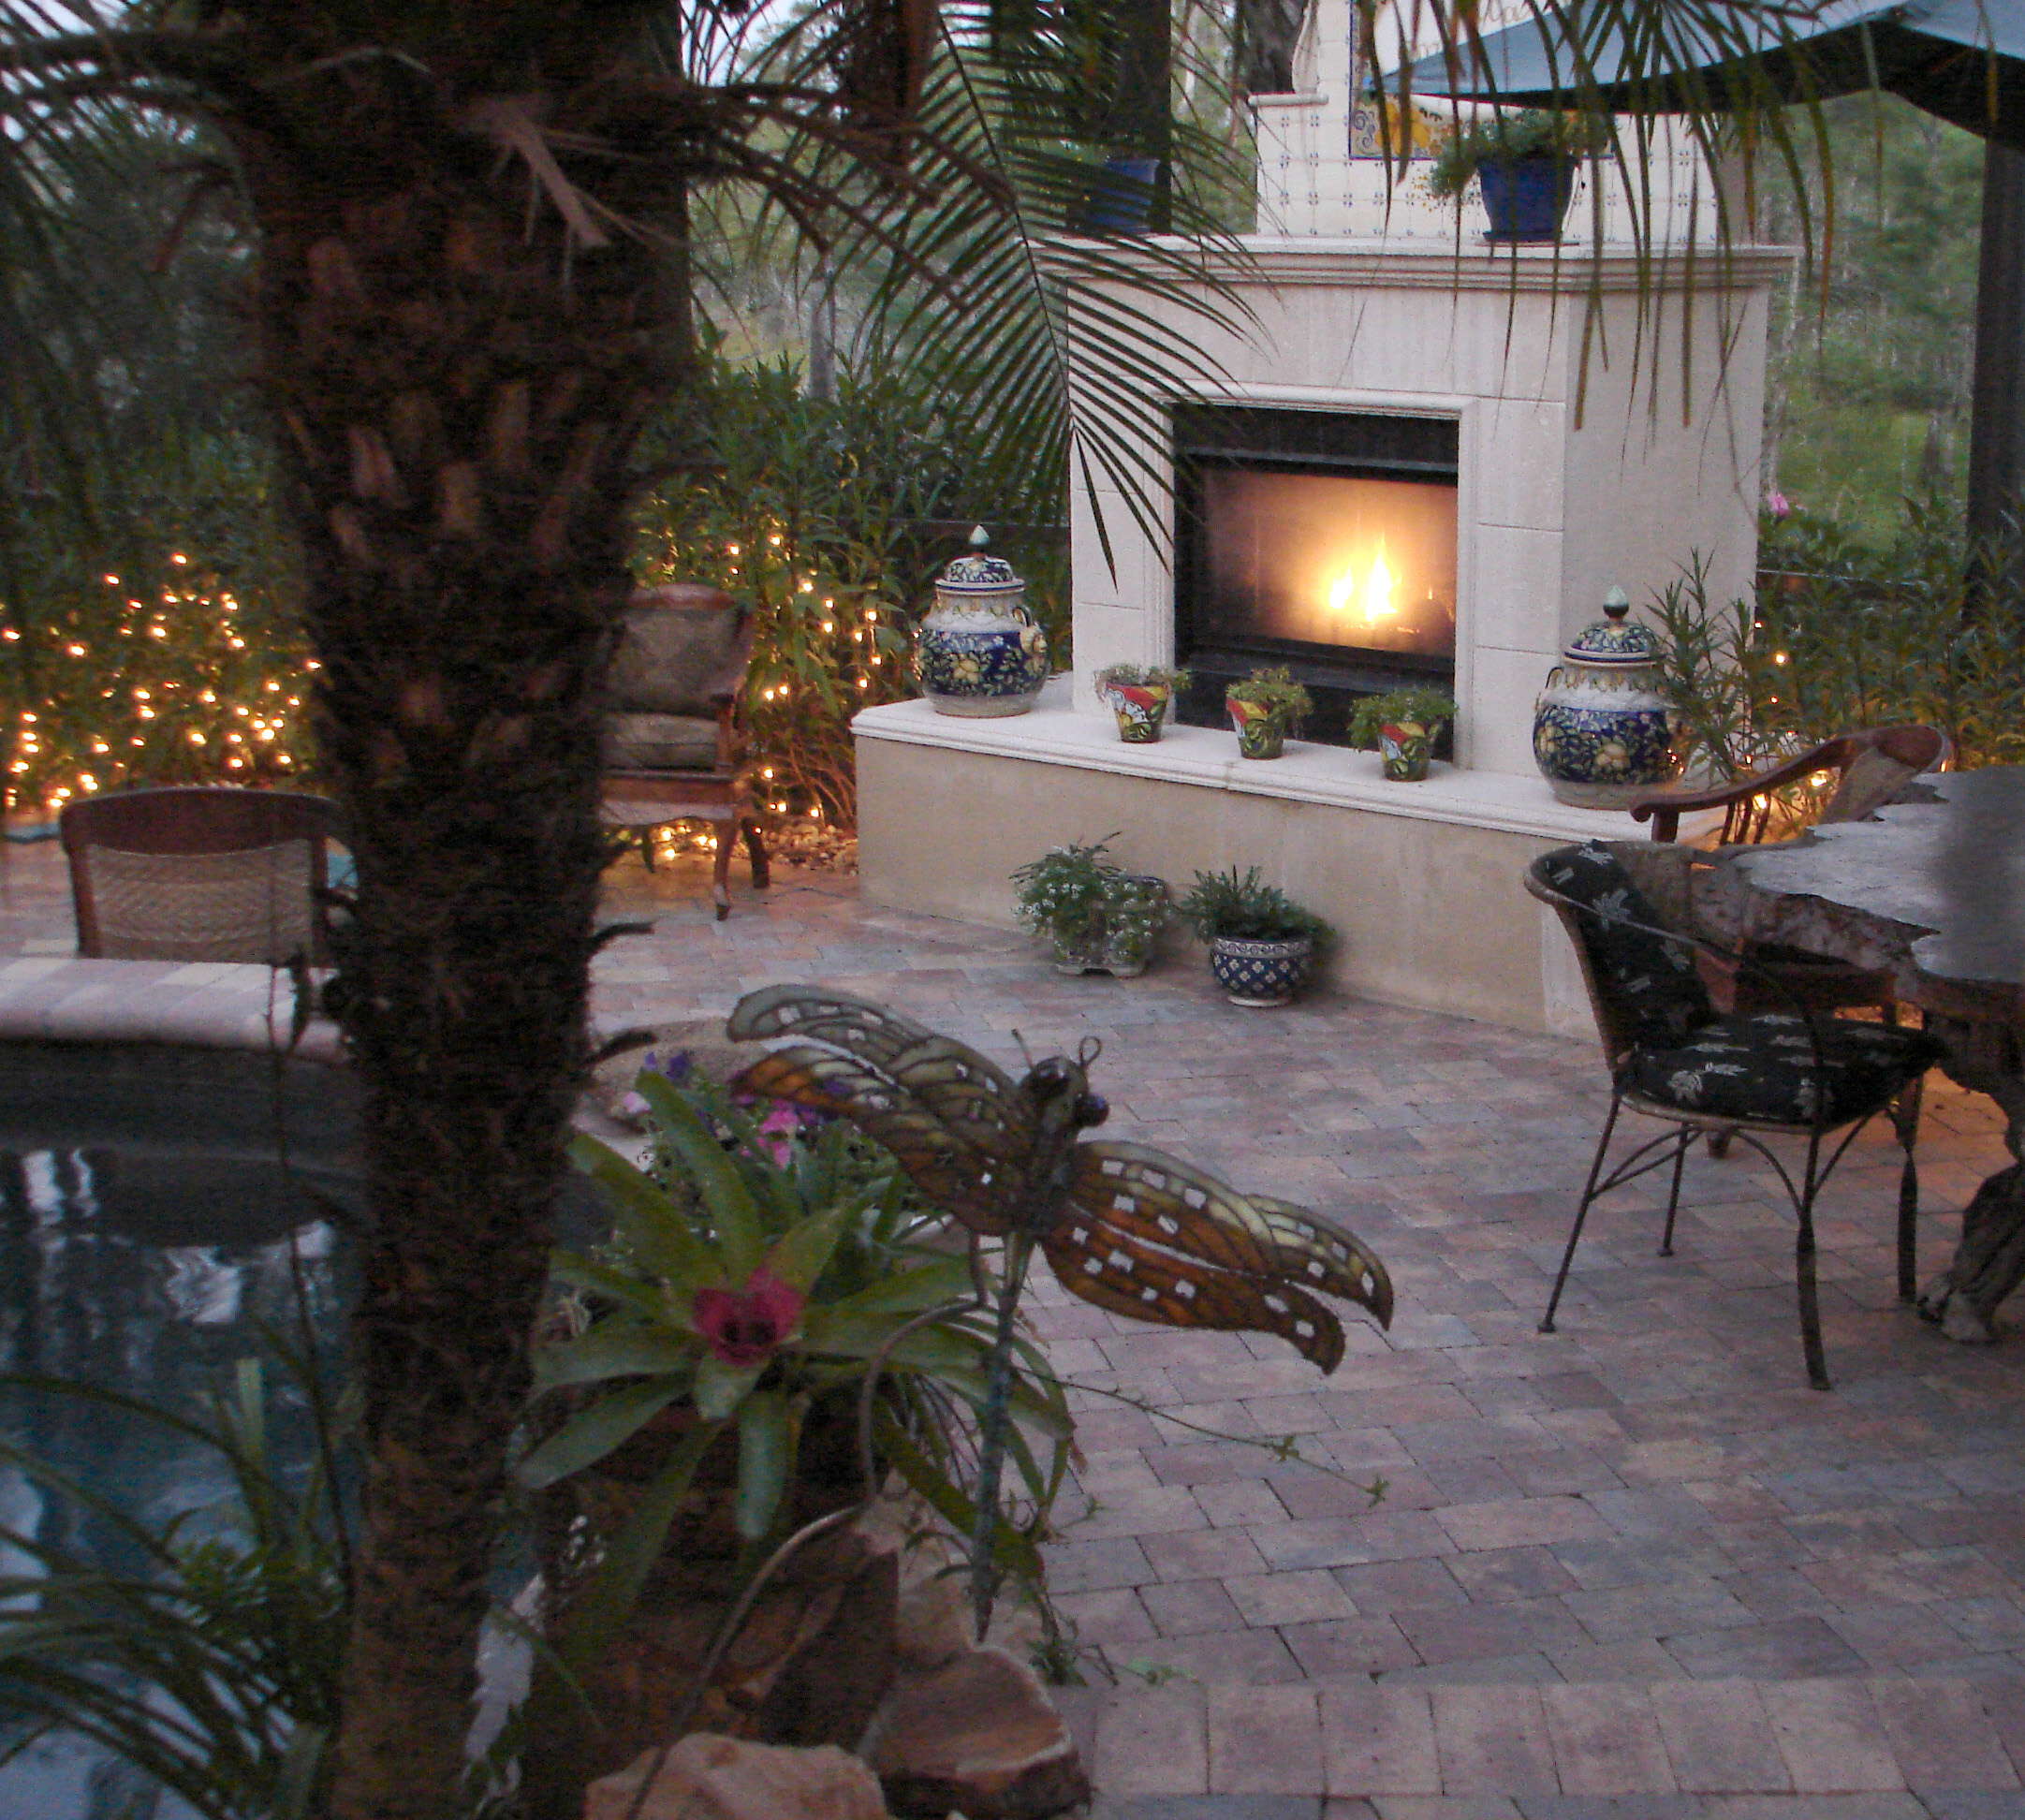 Take an Outdoor Living Space from Typical to Luxurious with These Fire Pit and Outdoor Fireplace Designs in State College, PA